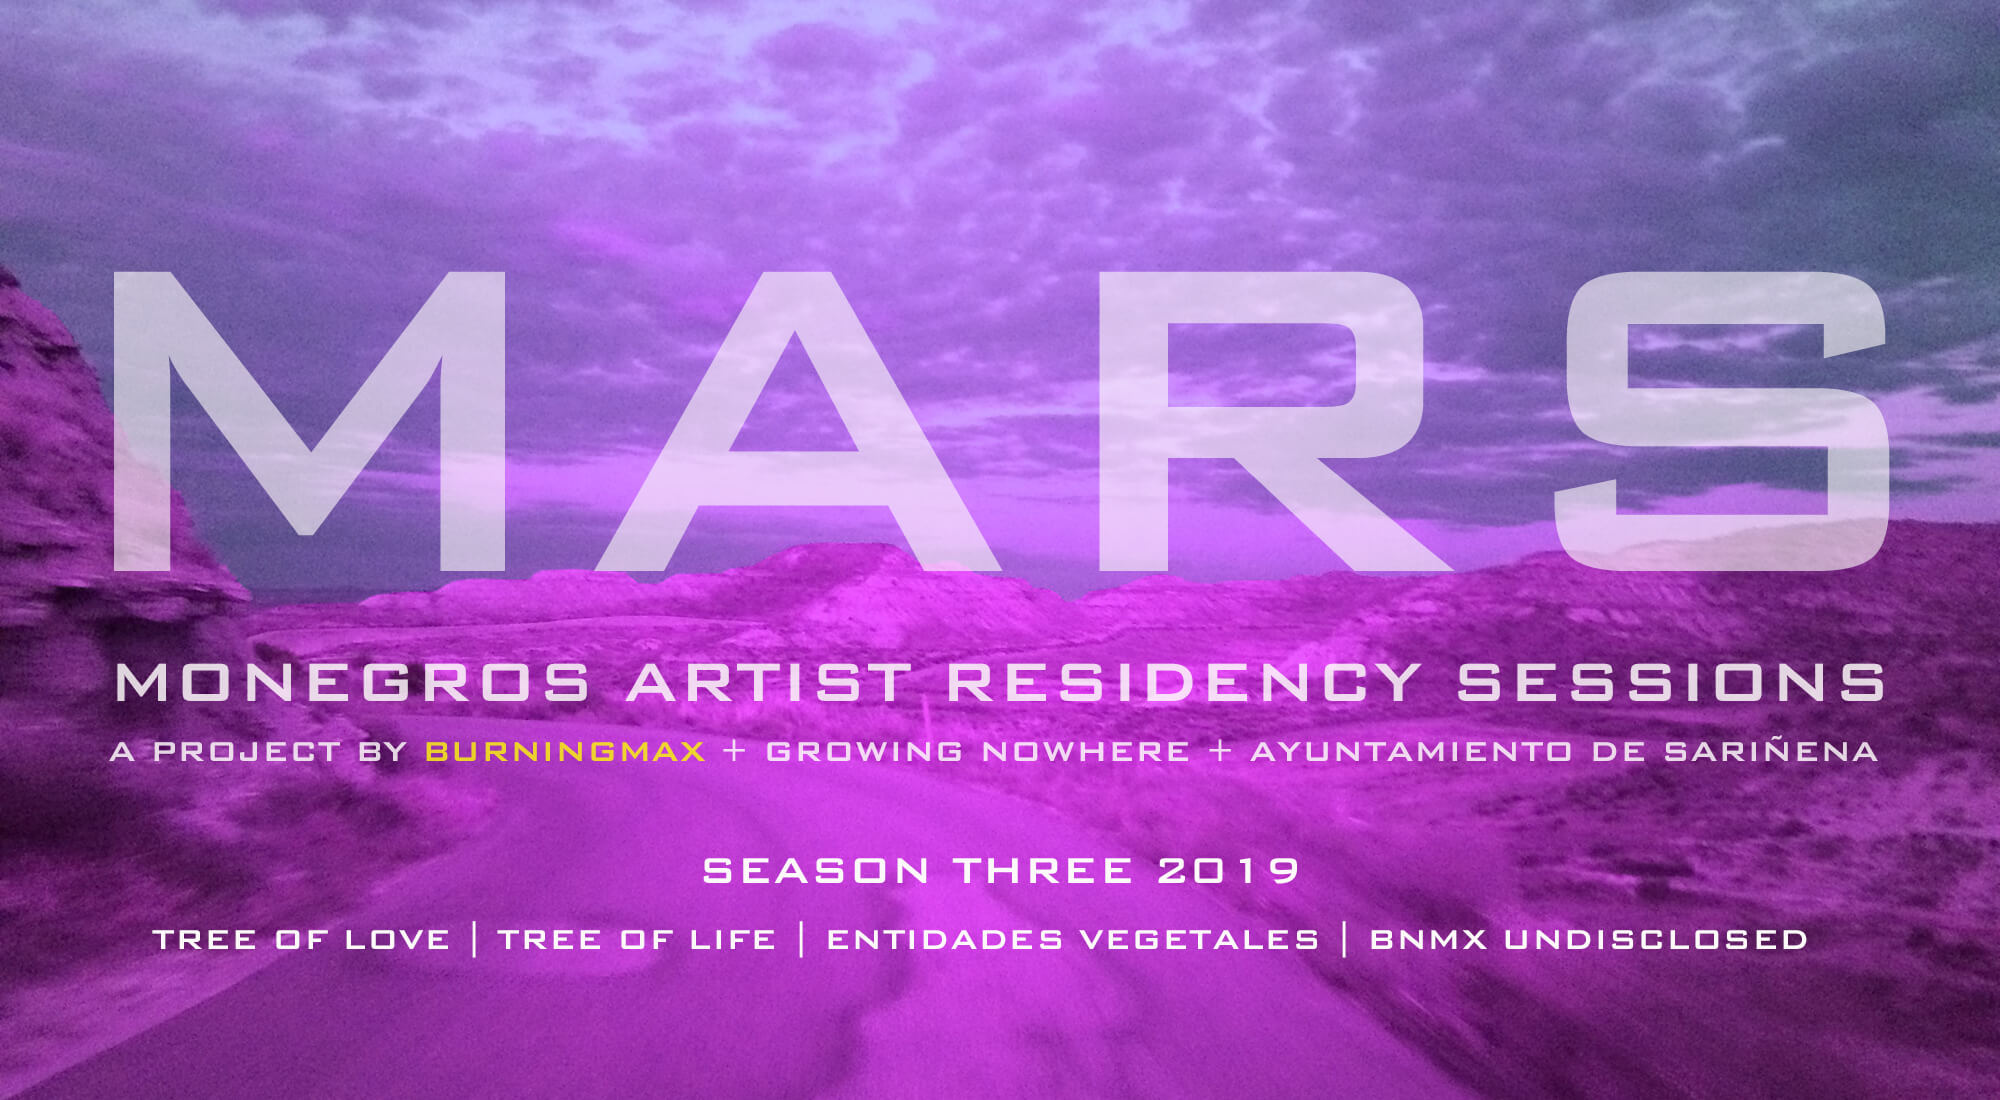 MARS 2019 - Monegros Artist Residency Sessions: Season 3  |  A project by Burningmax for the Nowhere 2019 festival